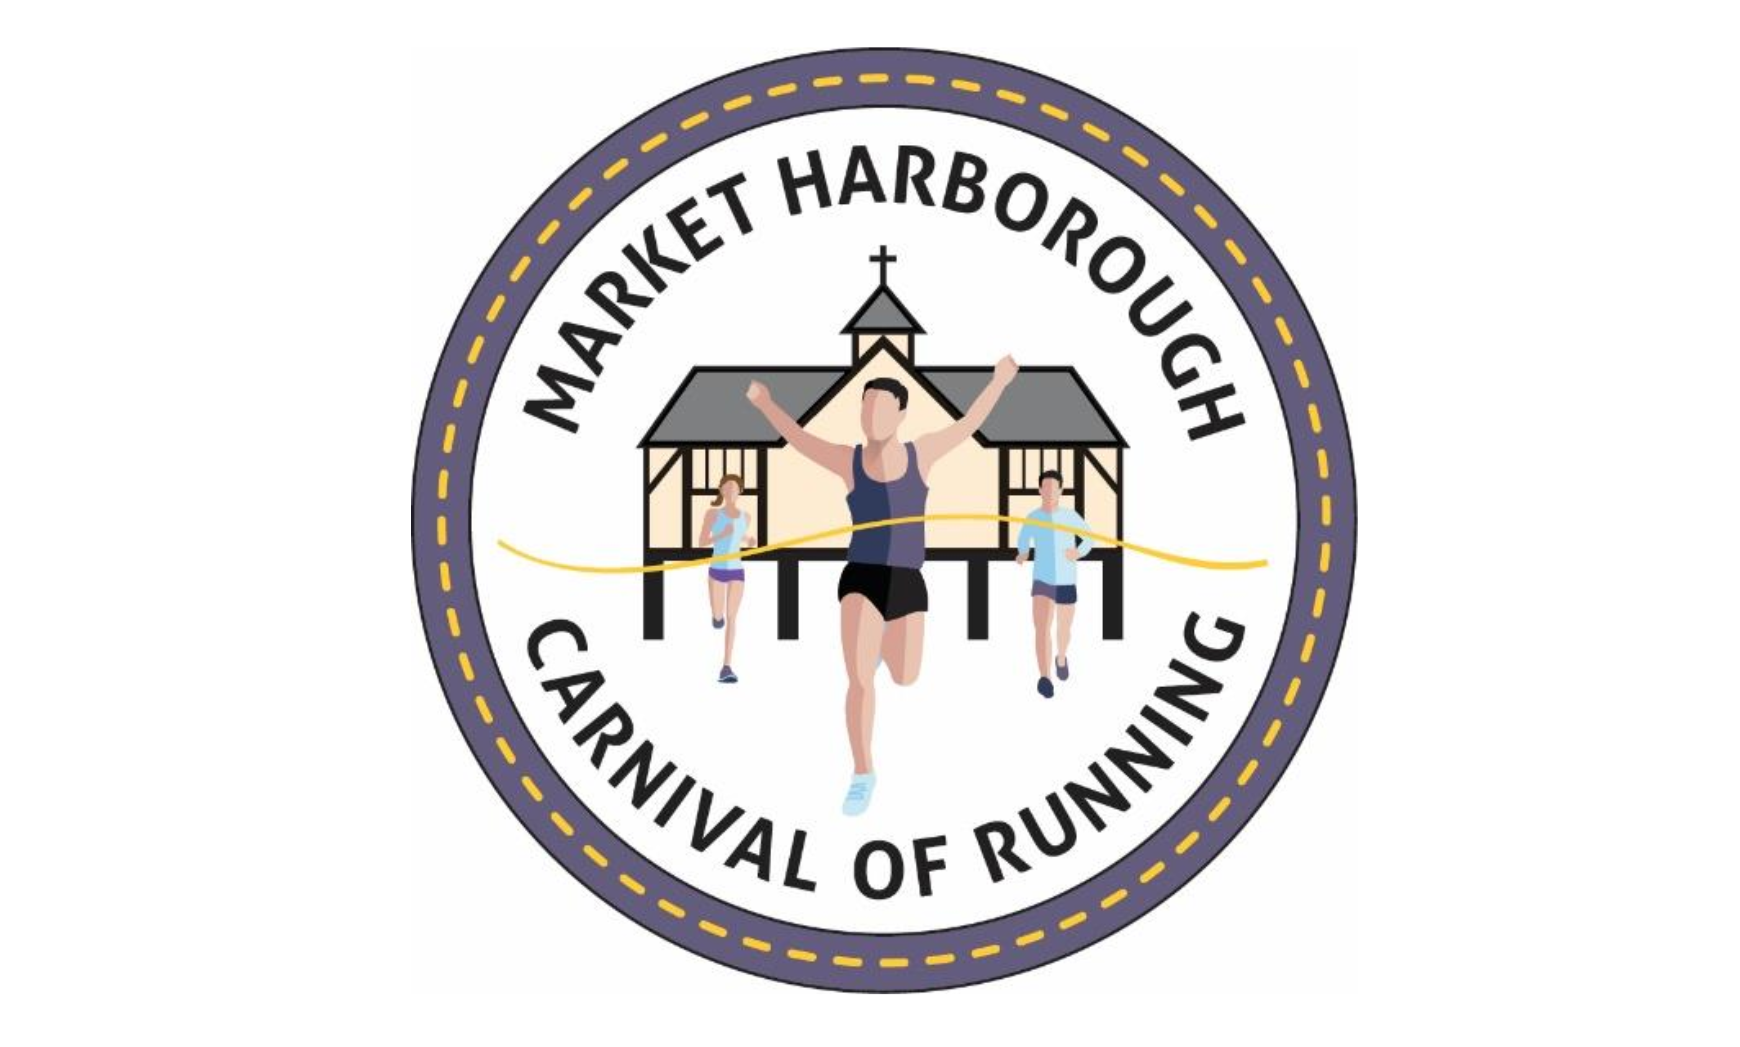 Market Harborough Carnival of Running - cover image